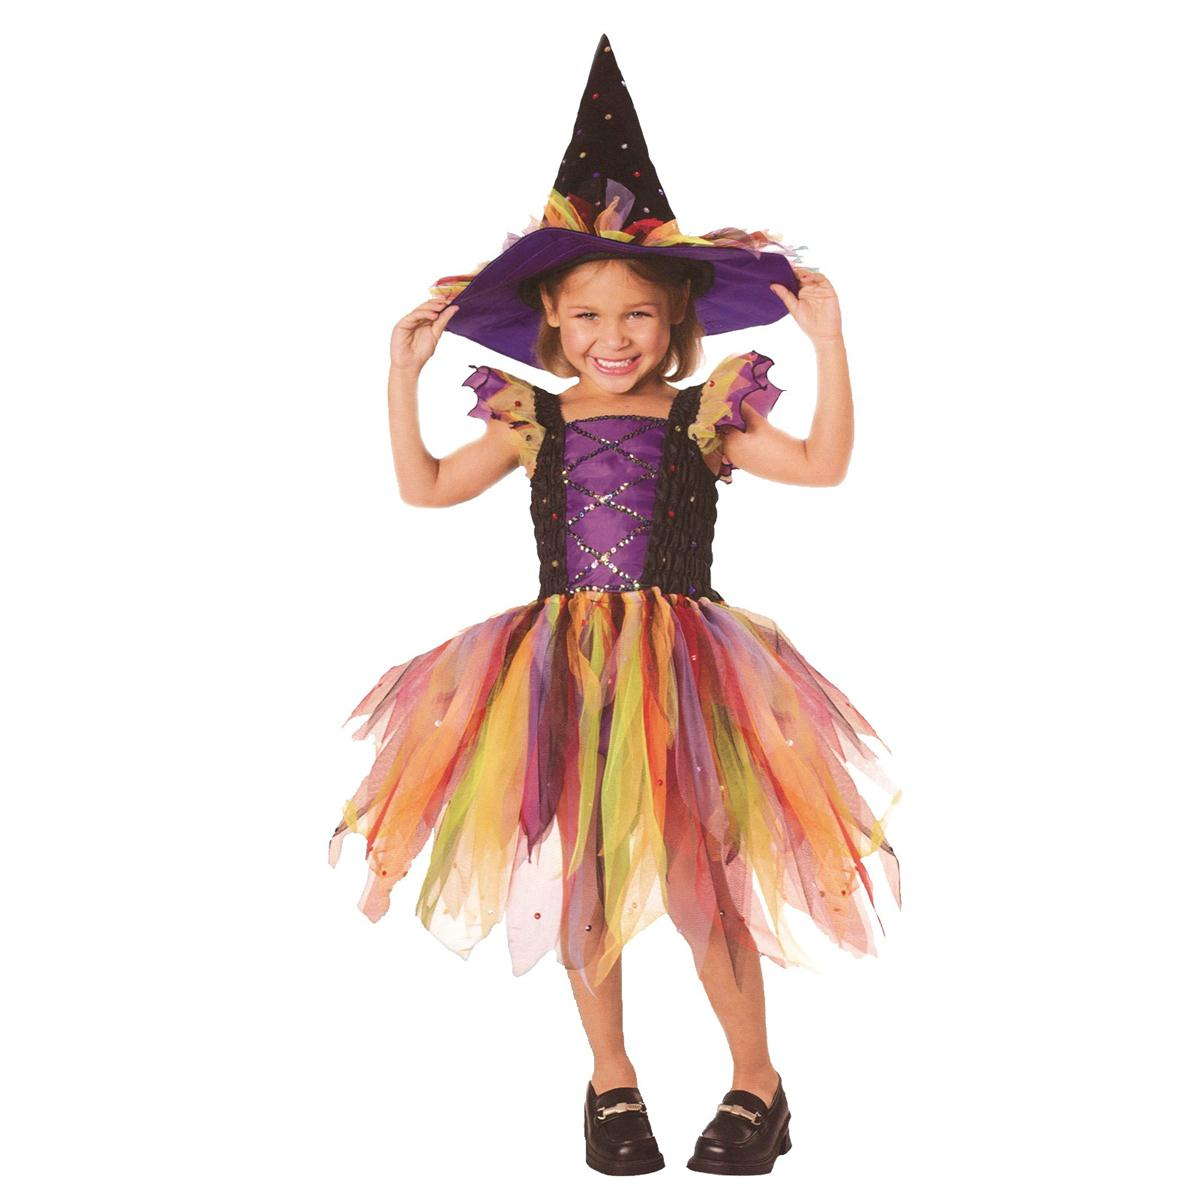 acomes: halloween costumes child witch costume halloween costumes